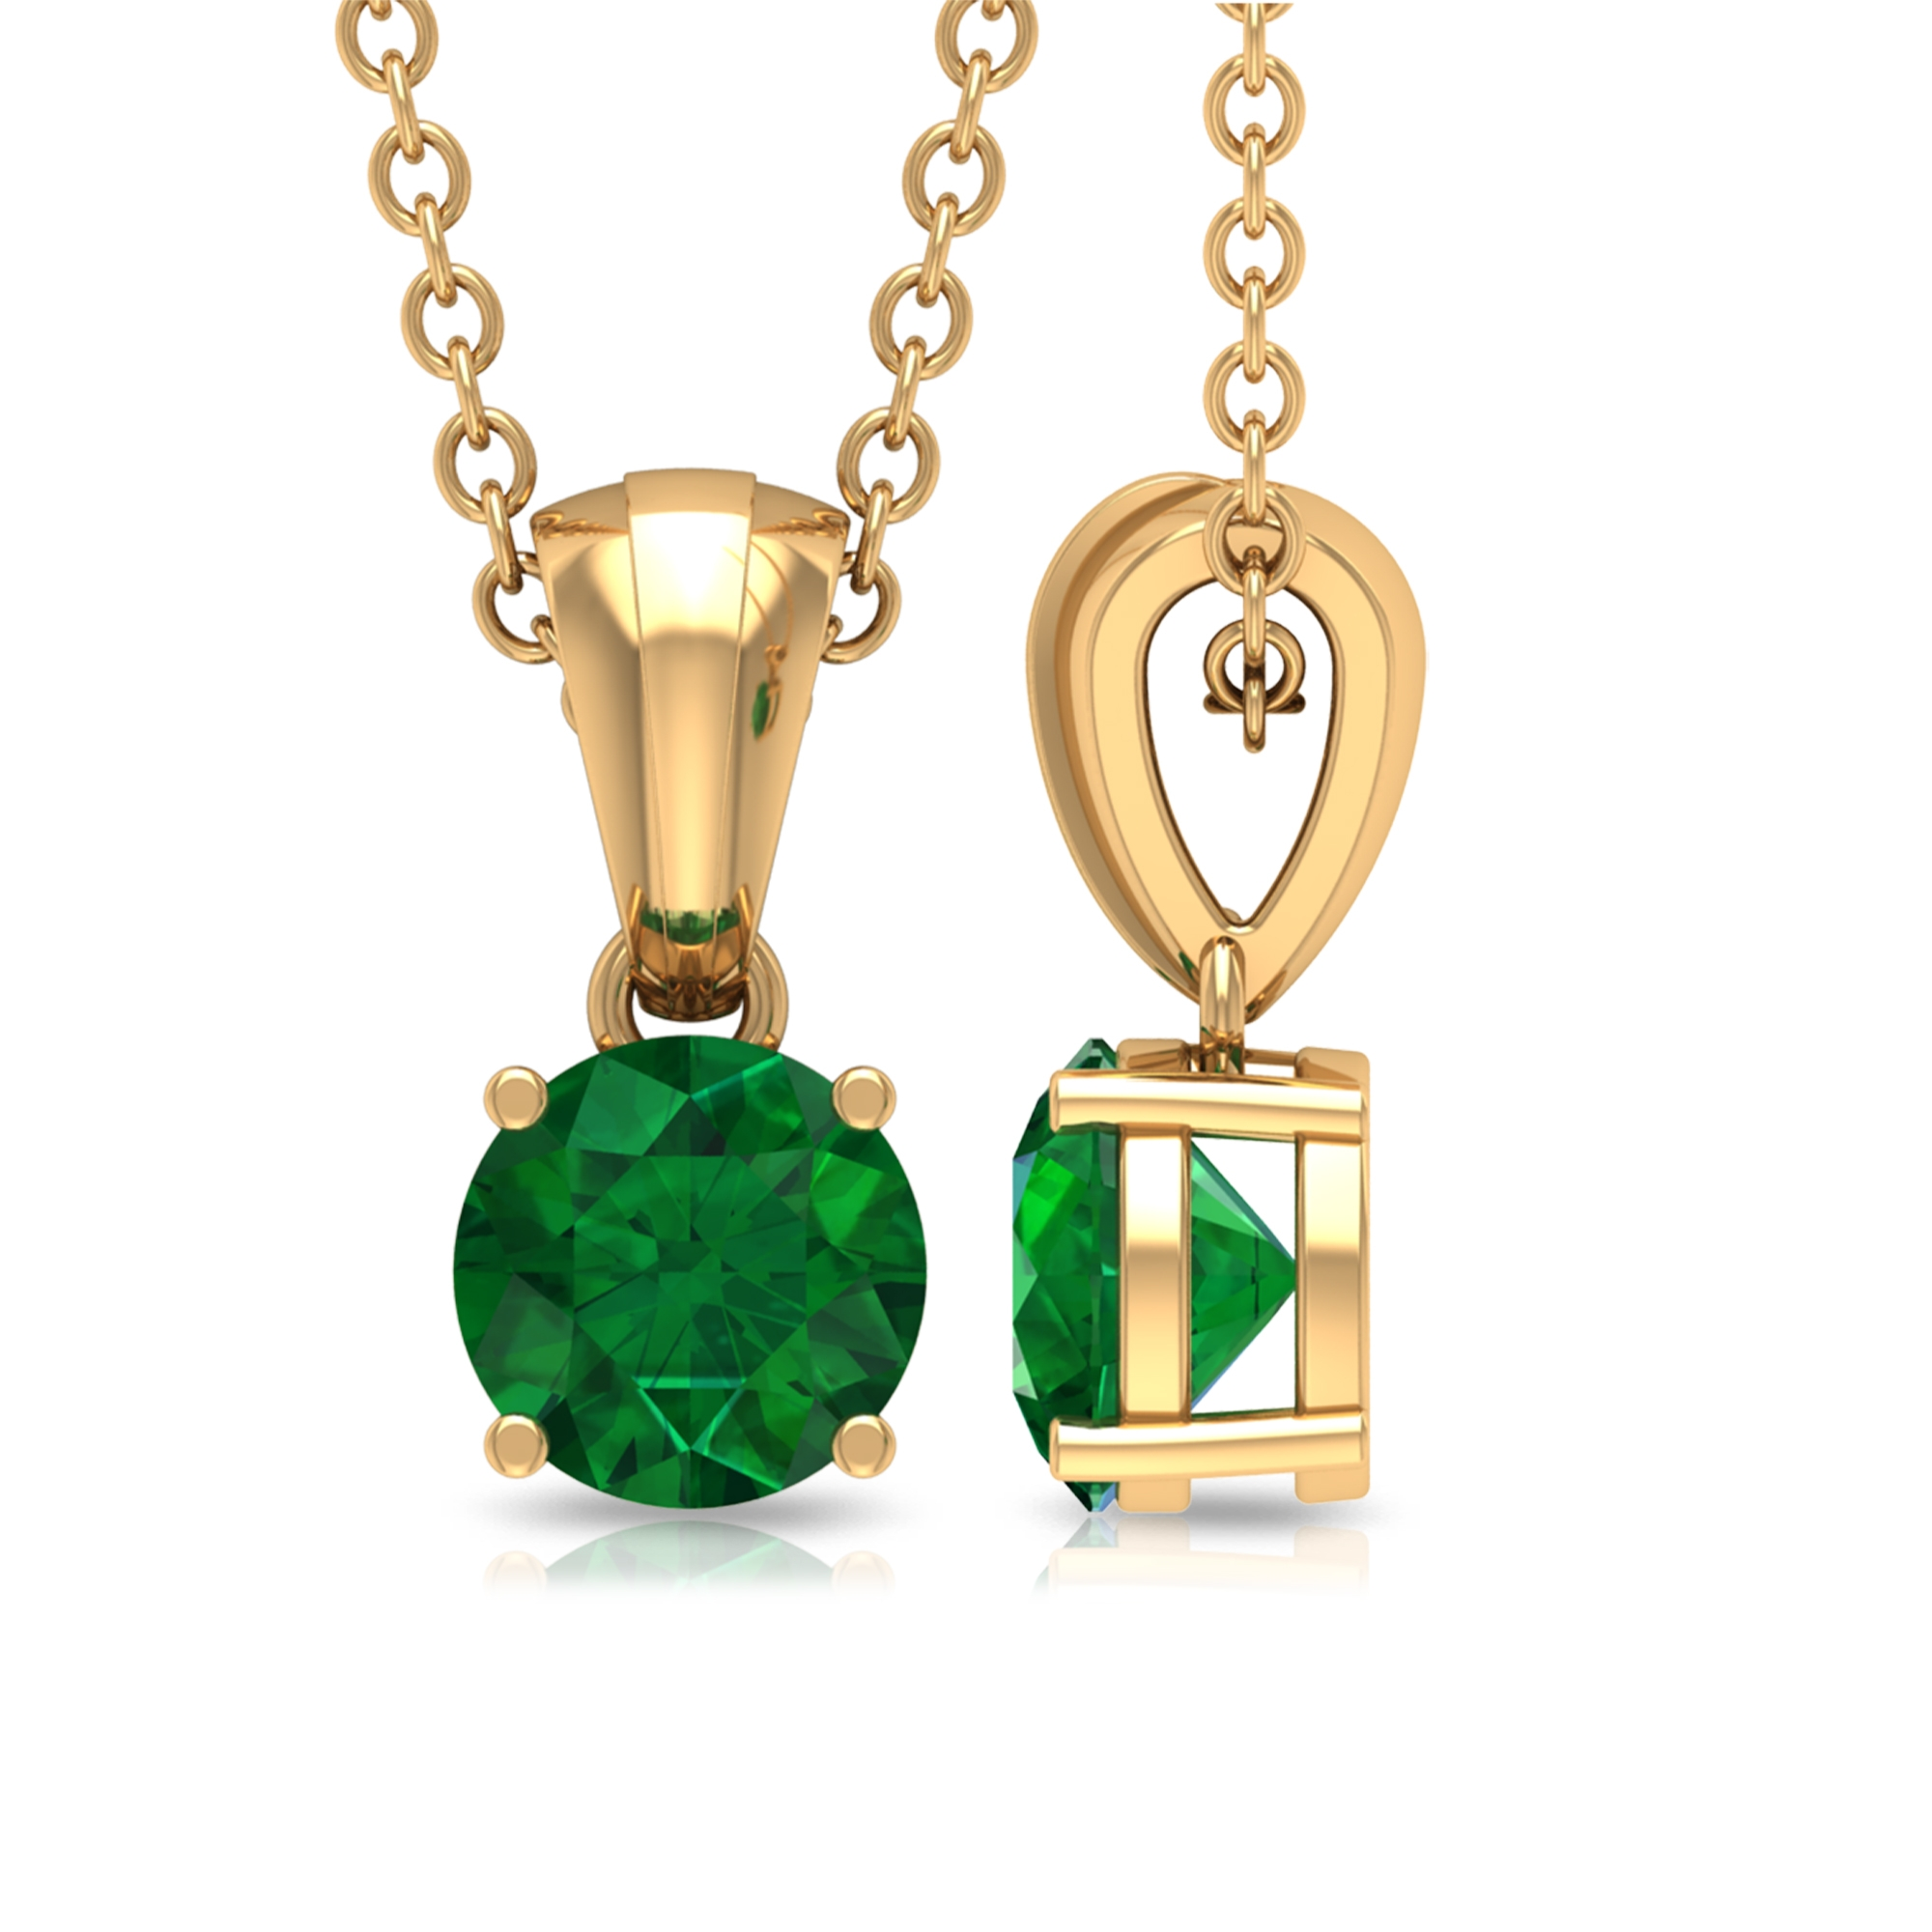 Four Prong Set 5 MM Round Cut Emerald Solitaire Pendant with Rondelle Bale